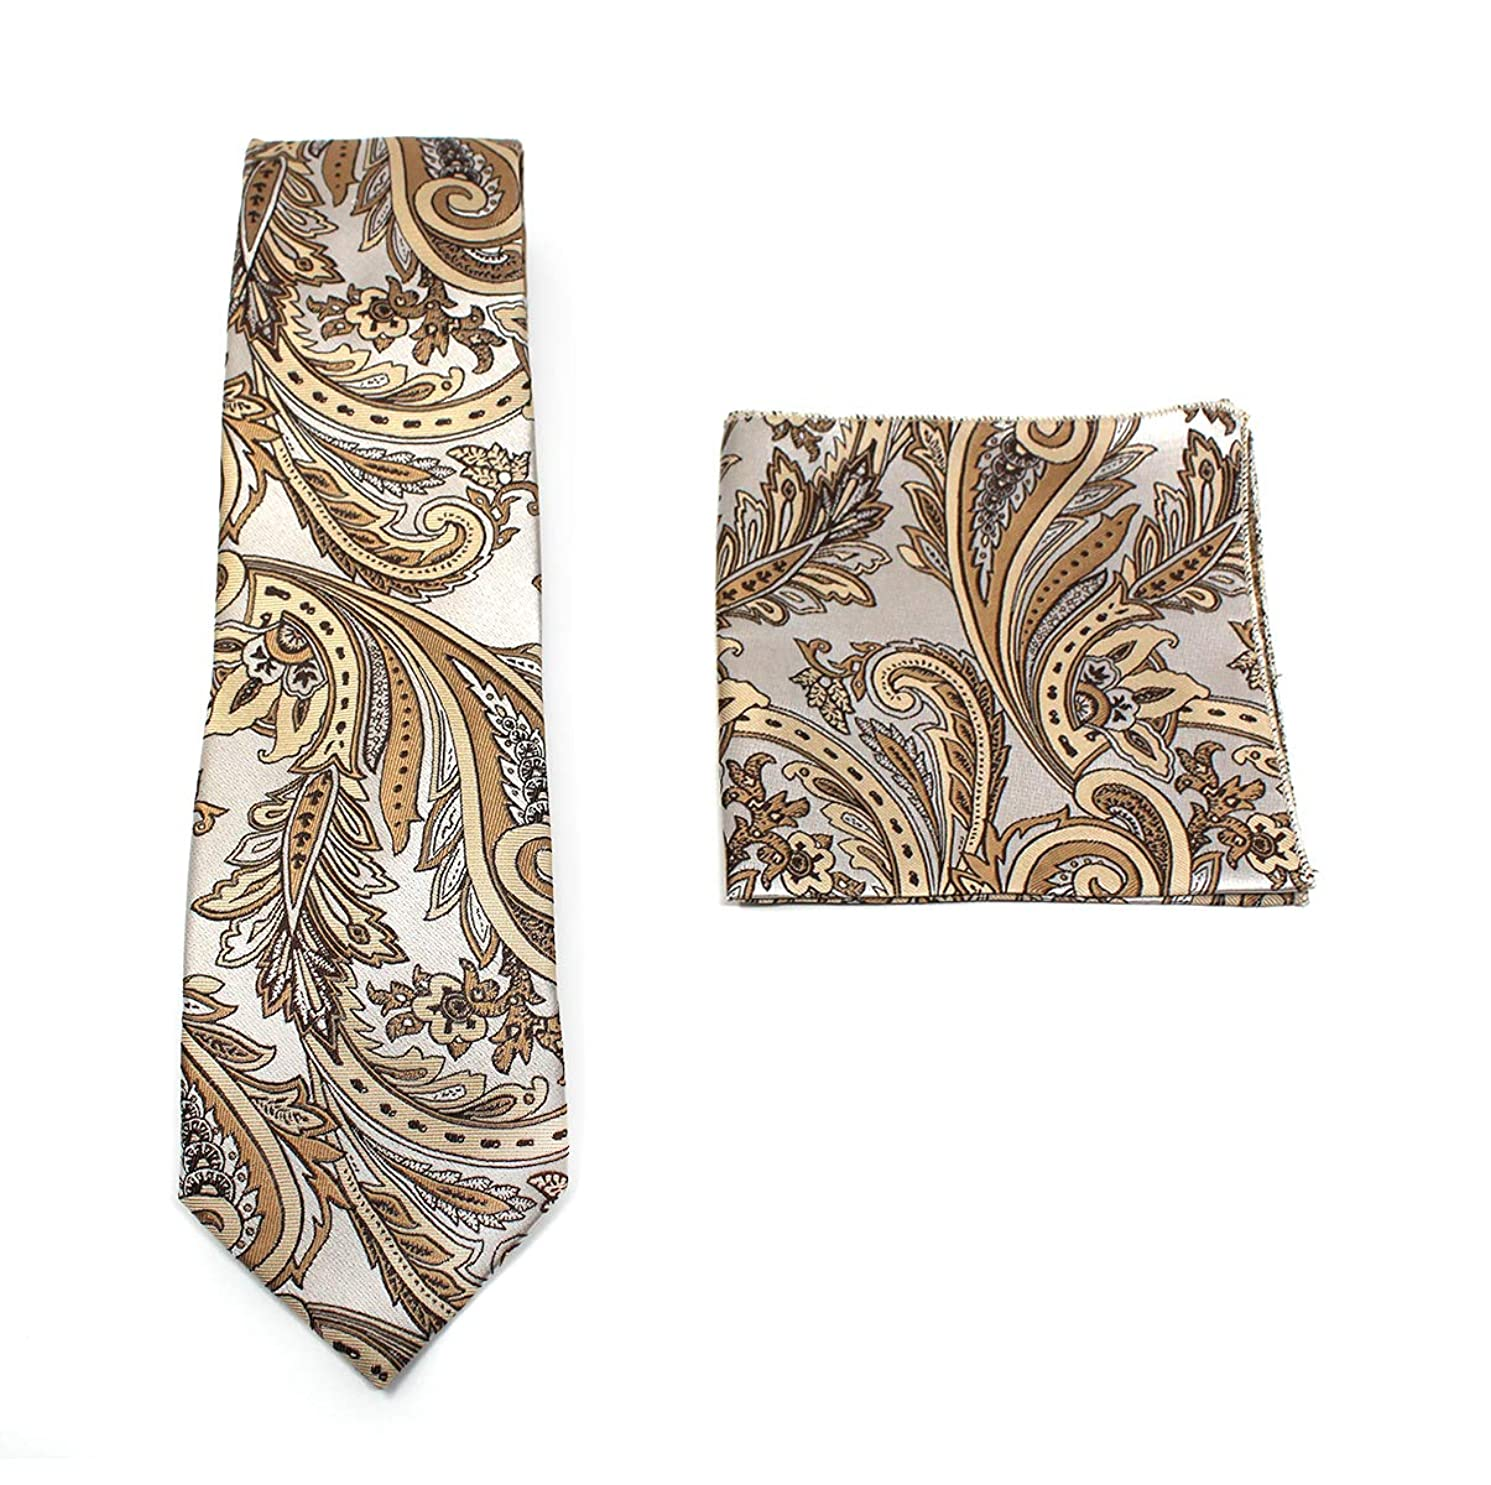 C. ALLEN Paisley Tie Handkerchief Woven Classic Men's Necktie & Pocket Square Set